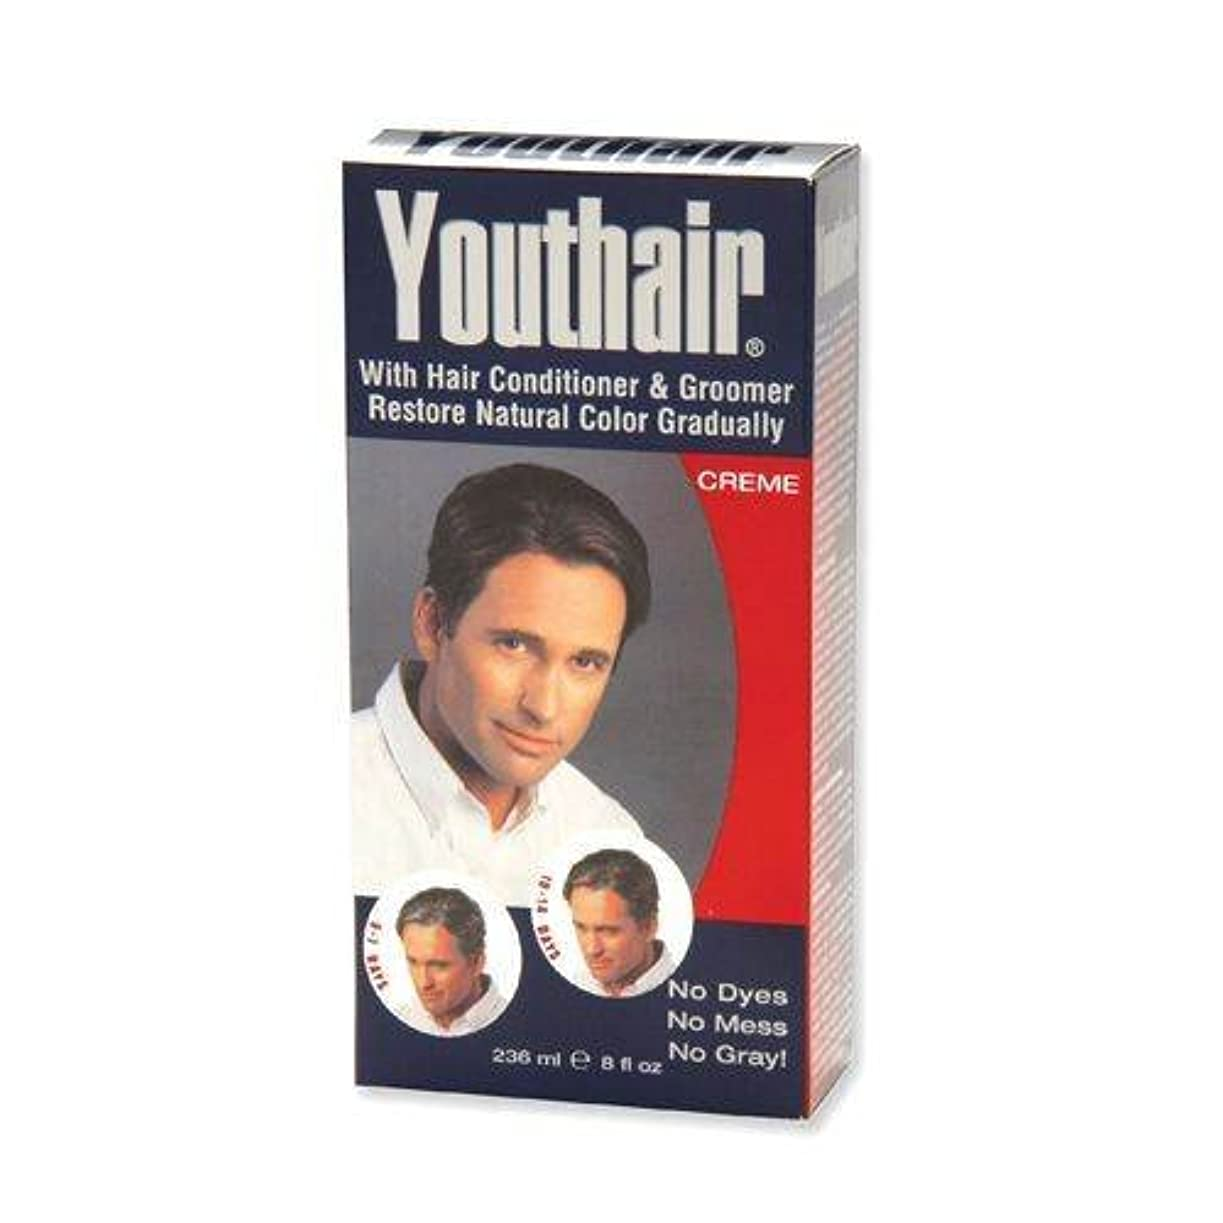 YOUTHAIR Creme for Men with Hair Conditioner & Groomer Restore Natural Color Gradually 8oz/236ml by Youthair